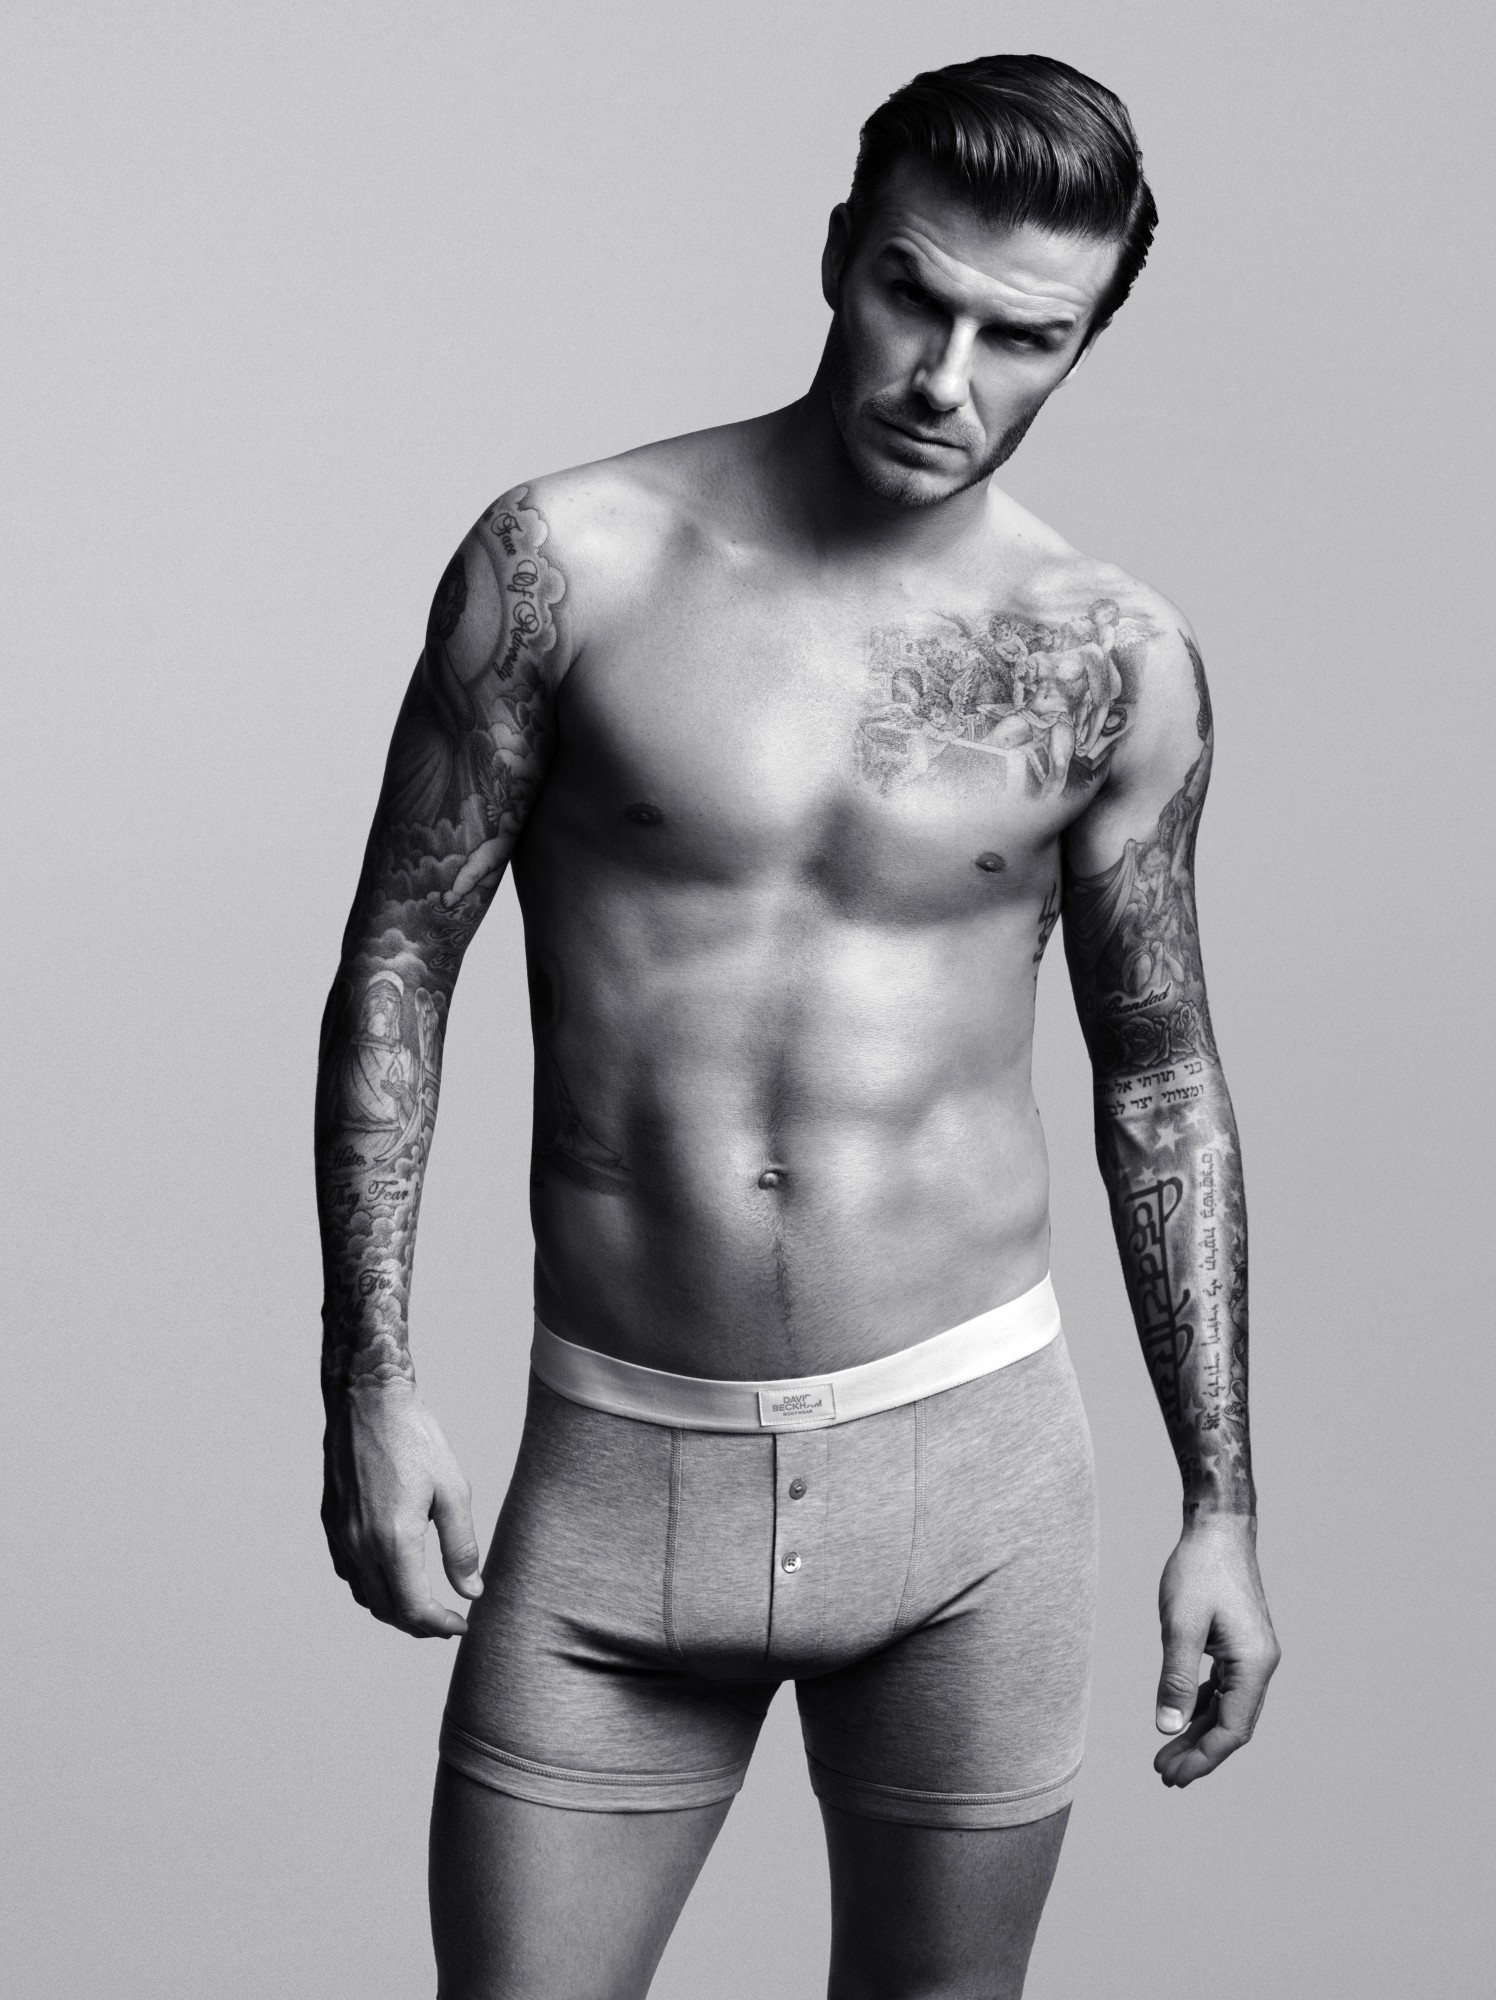 H Amp M David Beckham Bodywear Collection Amp Super Bowl Ad